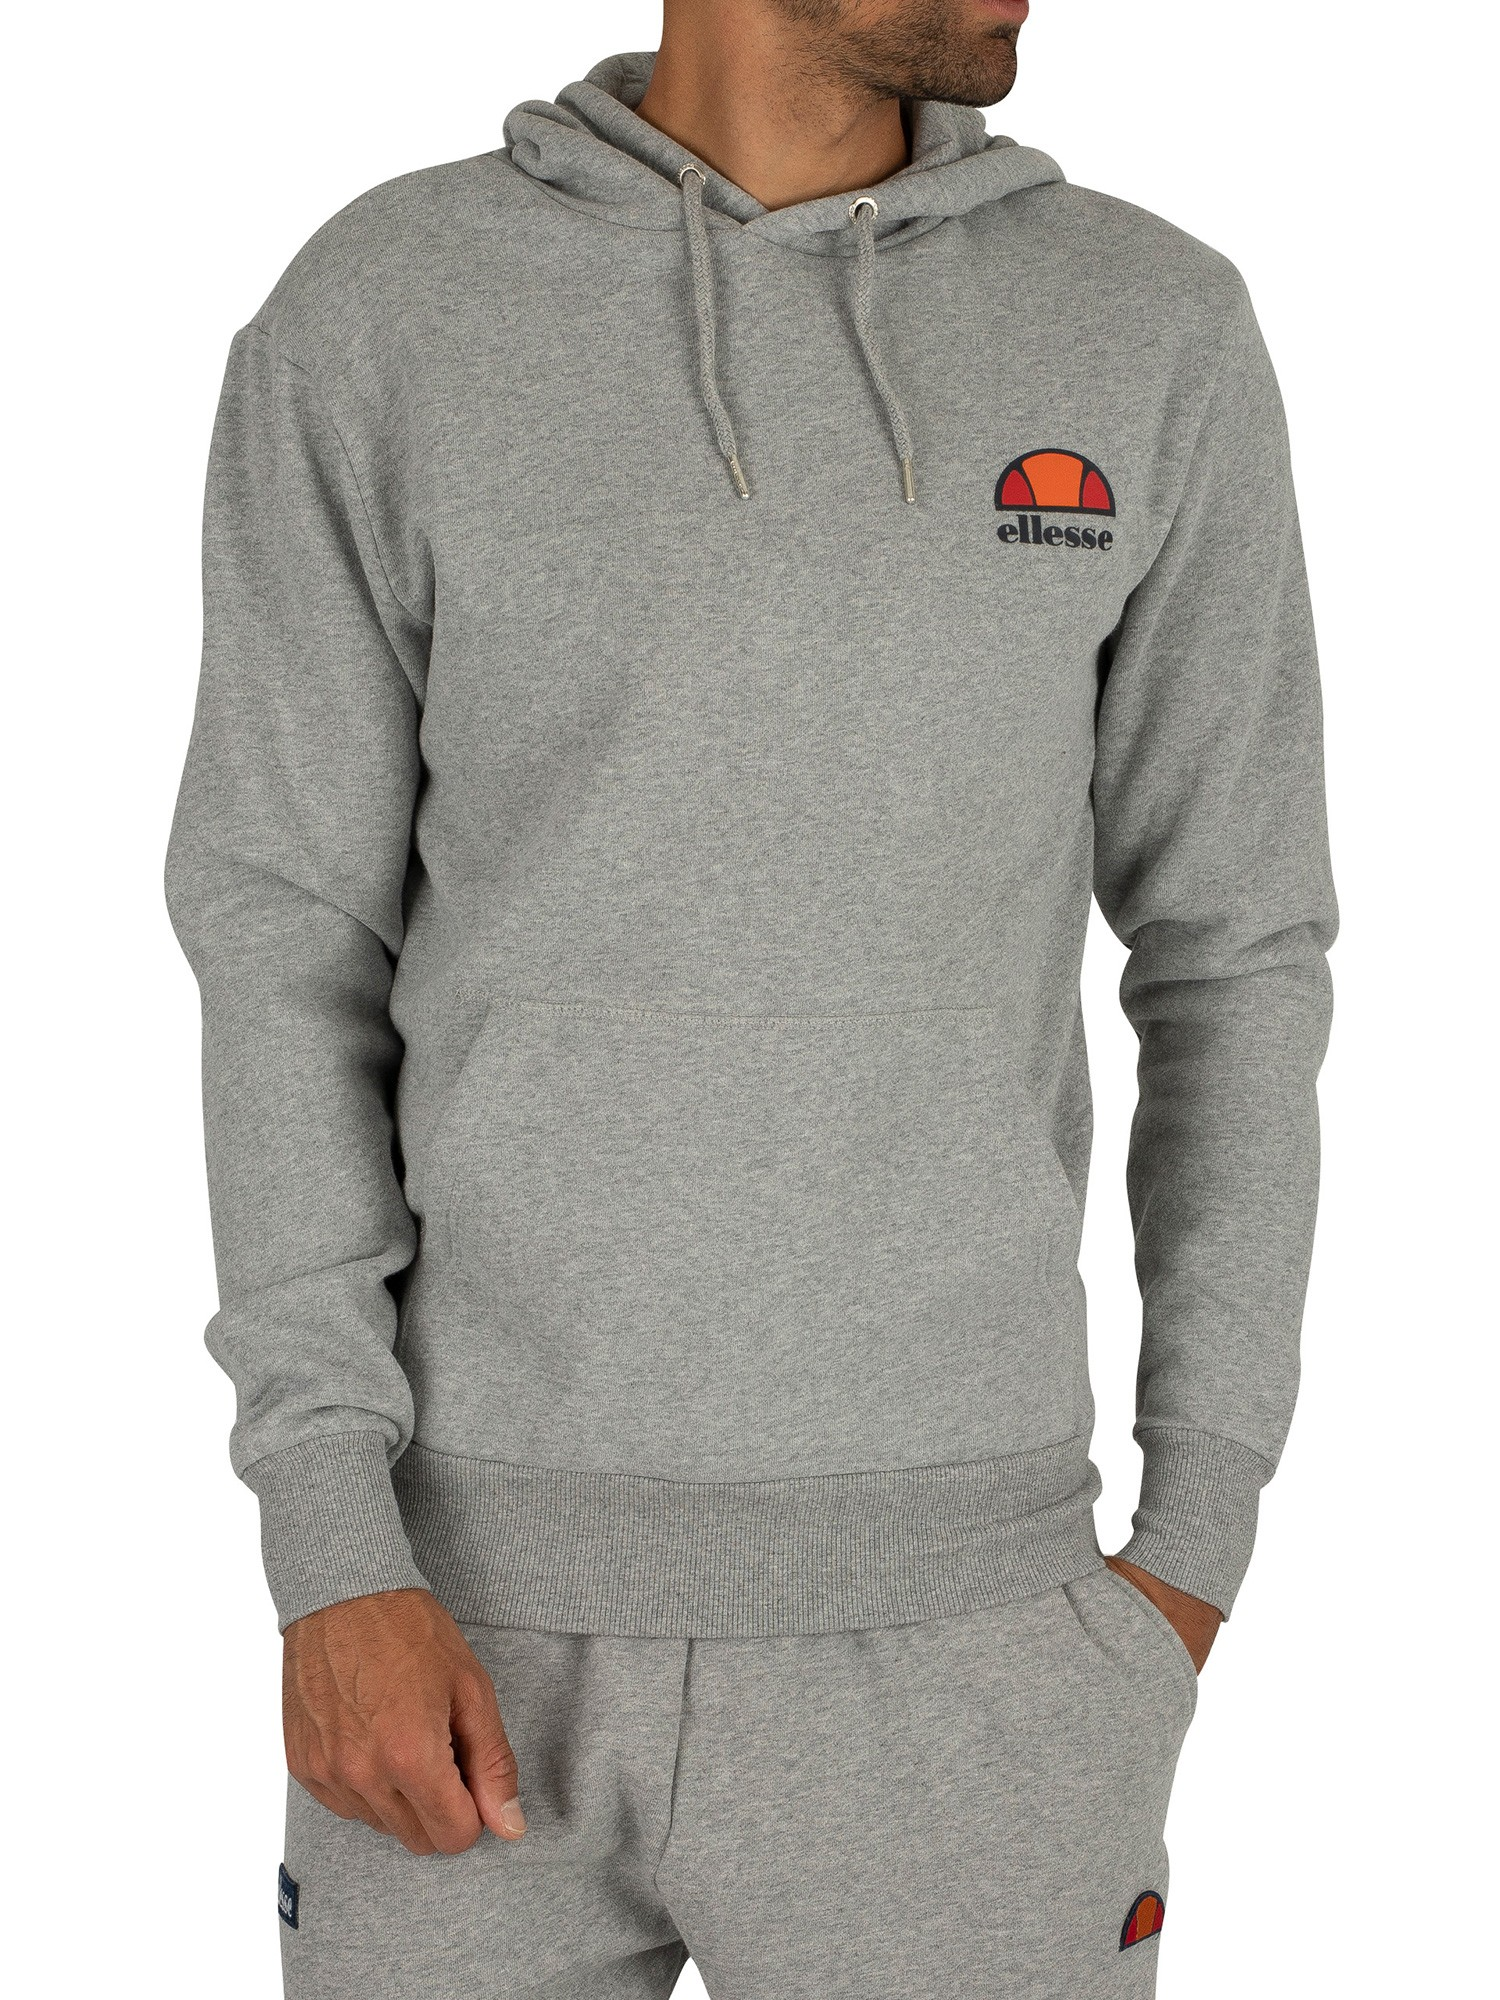 ellesse herren toce left logo hoodie grau ebay. Black Bedroom Furniture Sets. Home Design Ideas